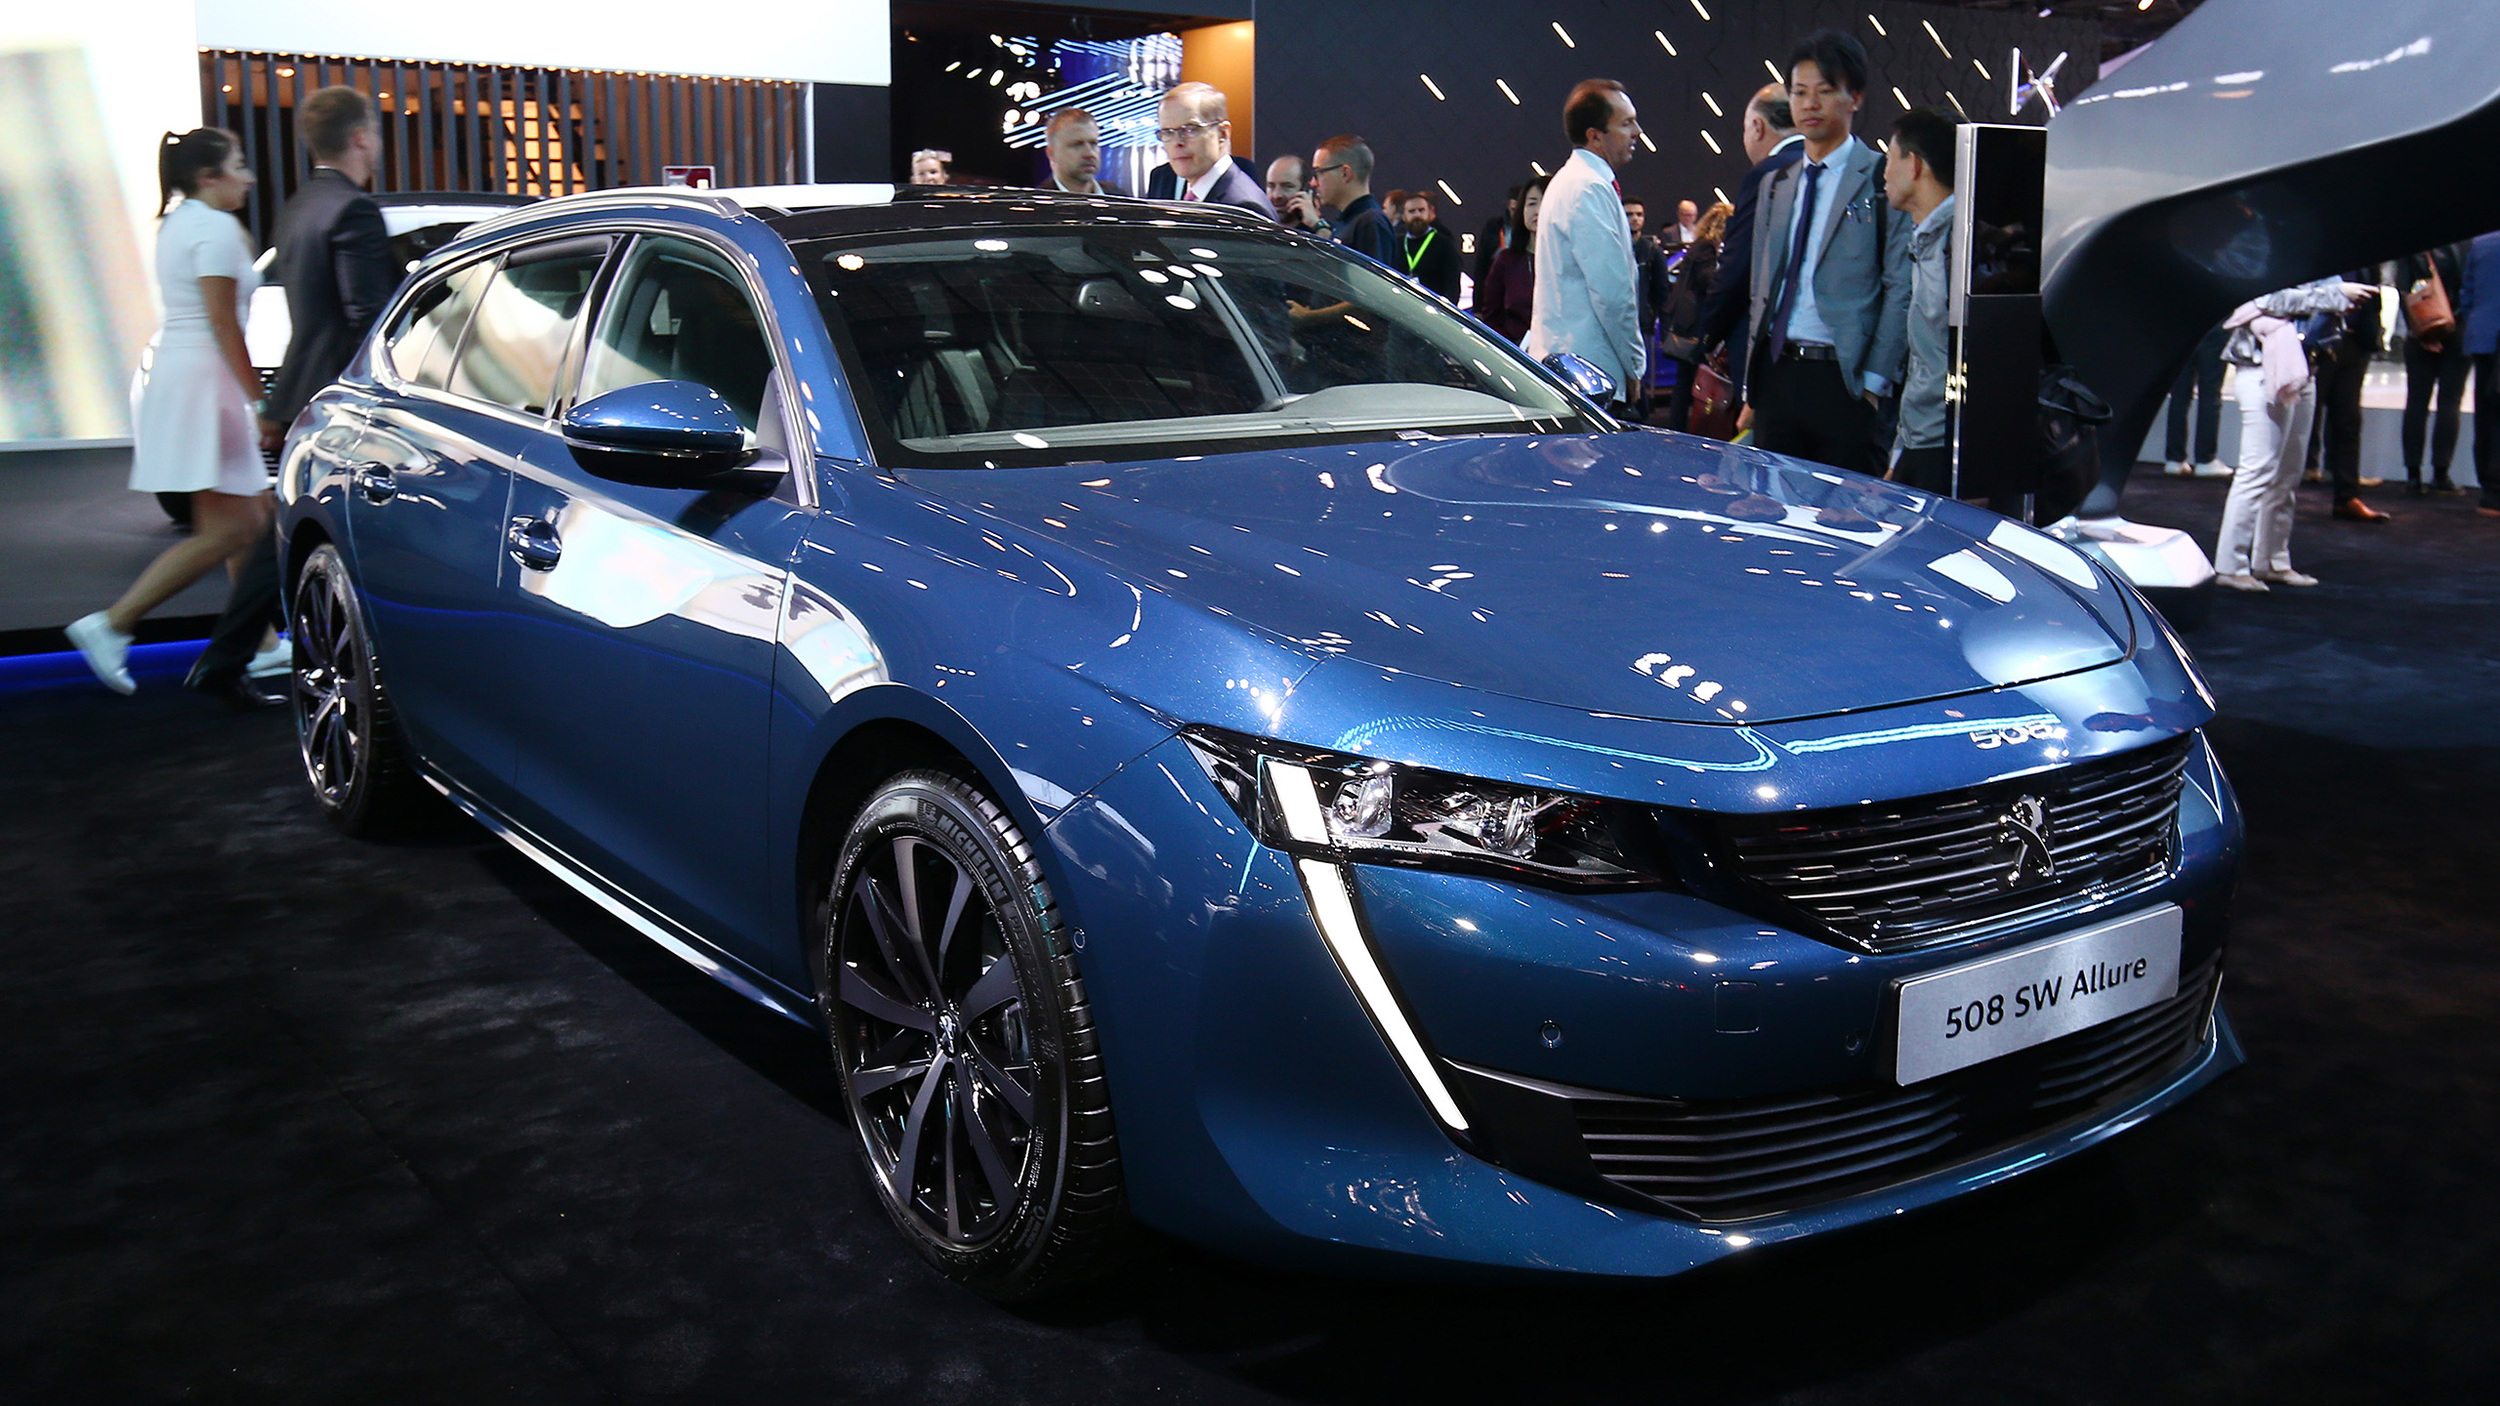 Garage Peugeot Paris 2019 Peugeot 508 Sw Allure Paris 2018 Photo Gallery Autoblog